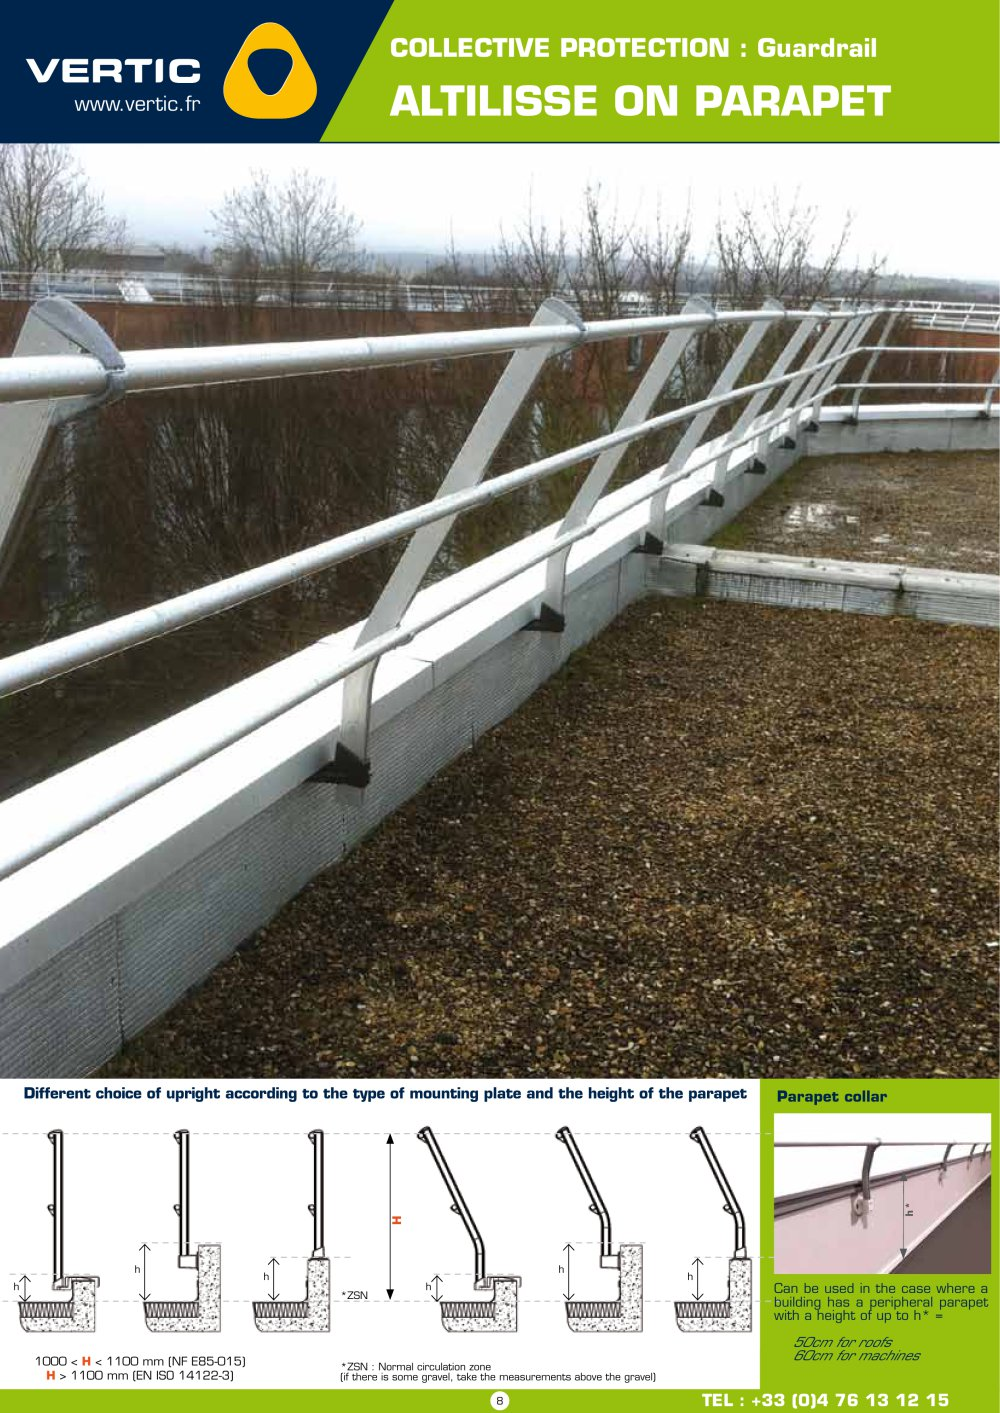 Parapets - what is it The height of the parapet. Parapet: photo